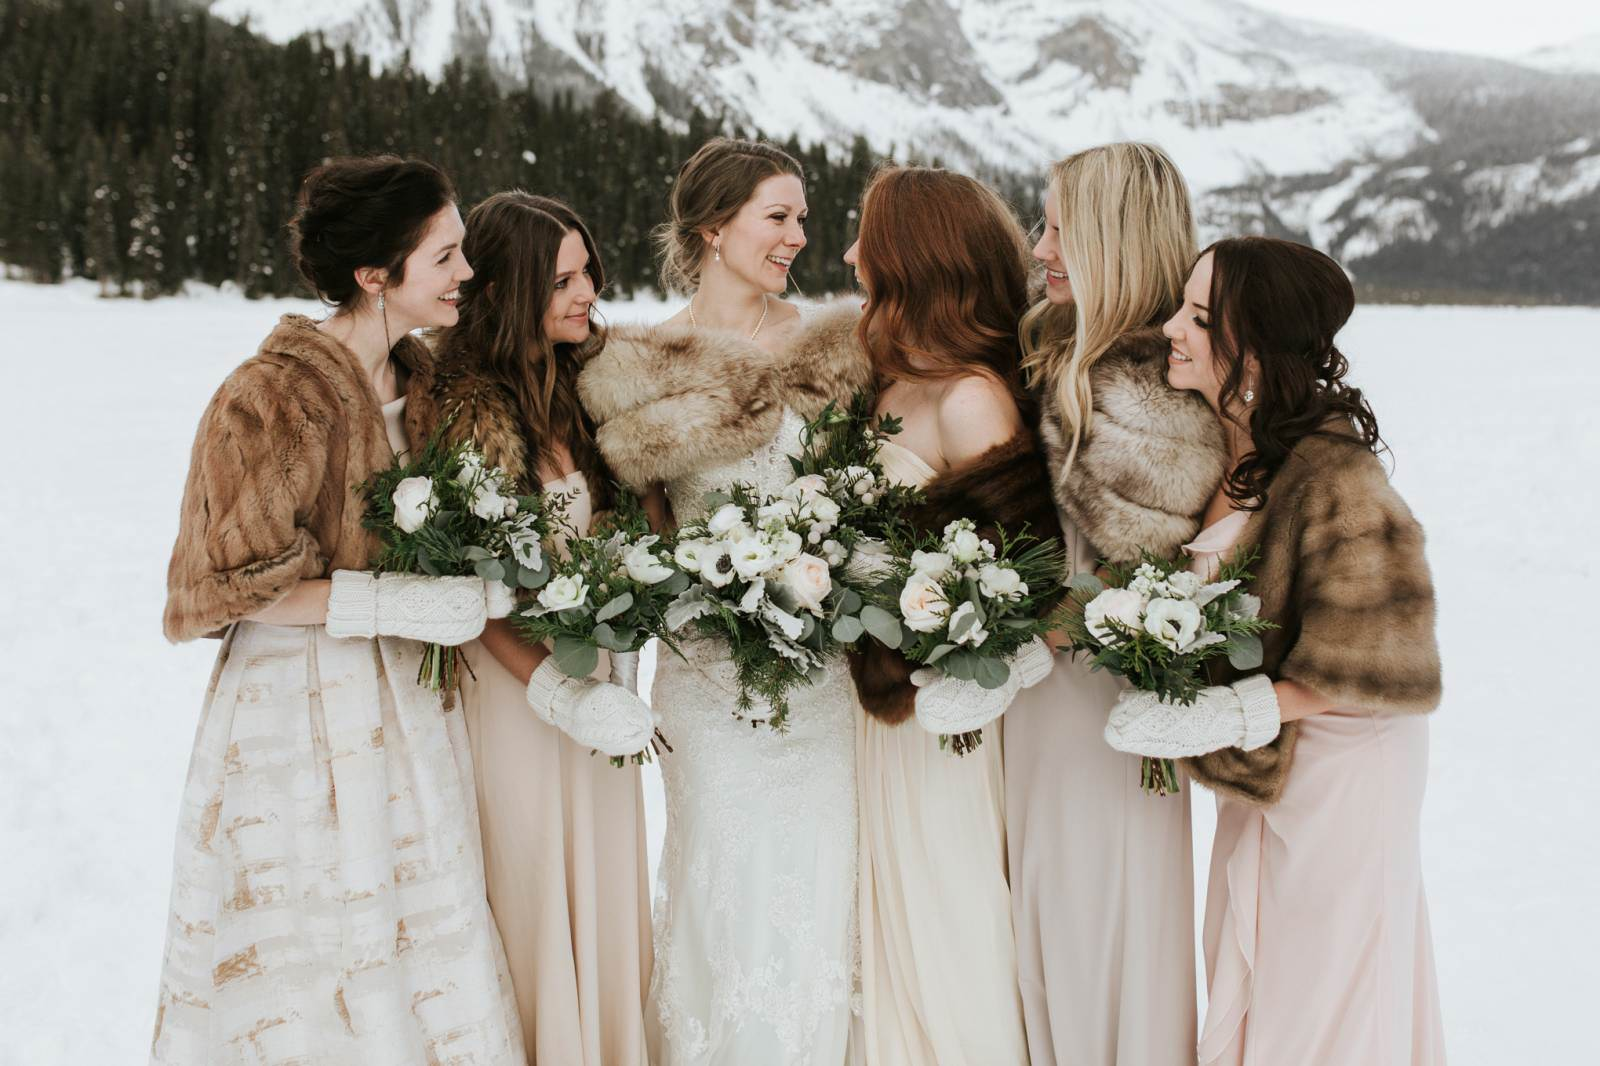 Ask The Experts: 7 Reasons to Hold a Winter Wedding